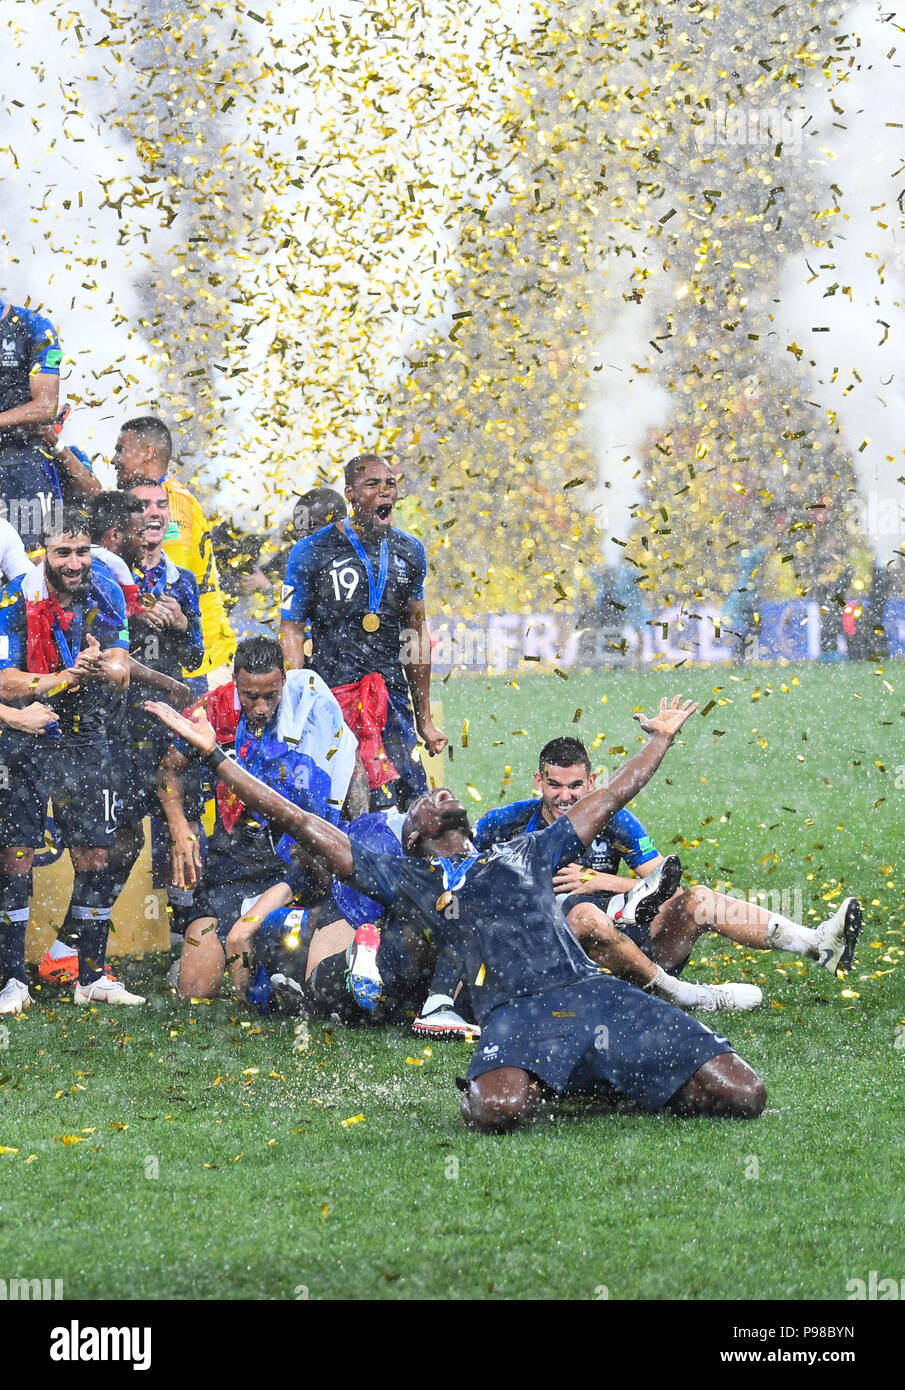 Moscow, Russland. 15th July, 2018. Winning ceremony: Handover of the World Cup trophy: Paul Pogba (France) in front. GES/Football/World Championship 2018 Russia, Final: France- Croatia, 15.07.2018 GES/Soccer/Football, World Cup 2018 Russia, Final: France vs. Croatia, Moscow, July 15, 2018 | usage worldwide Credit: dpa/Alamy Live News - Stock Image